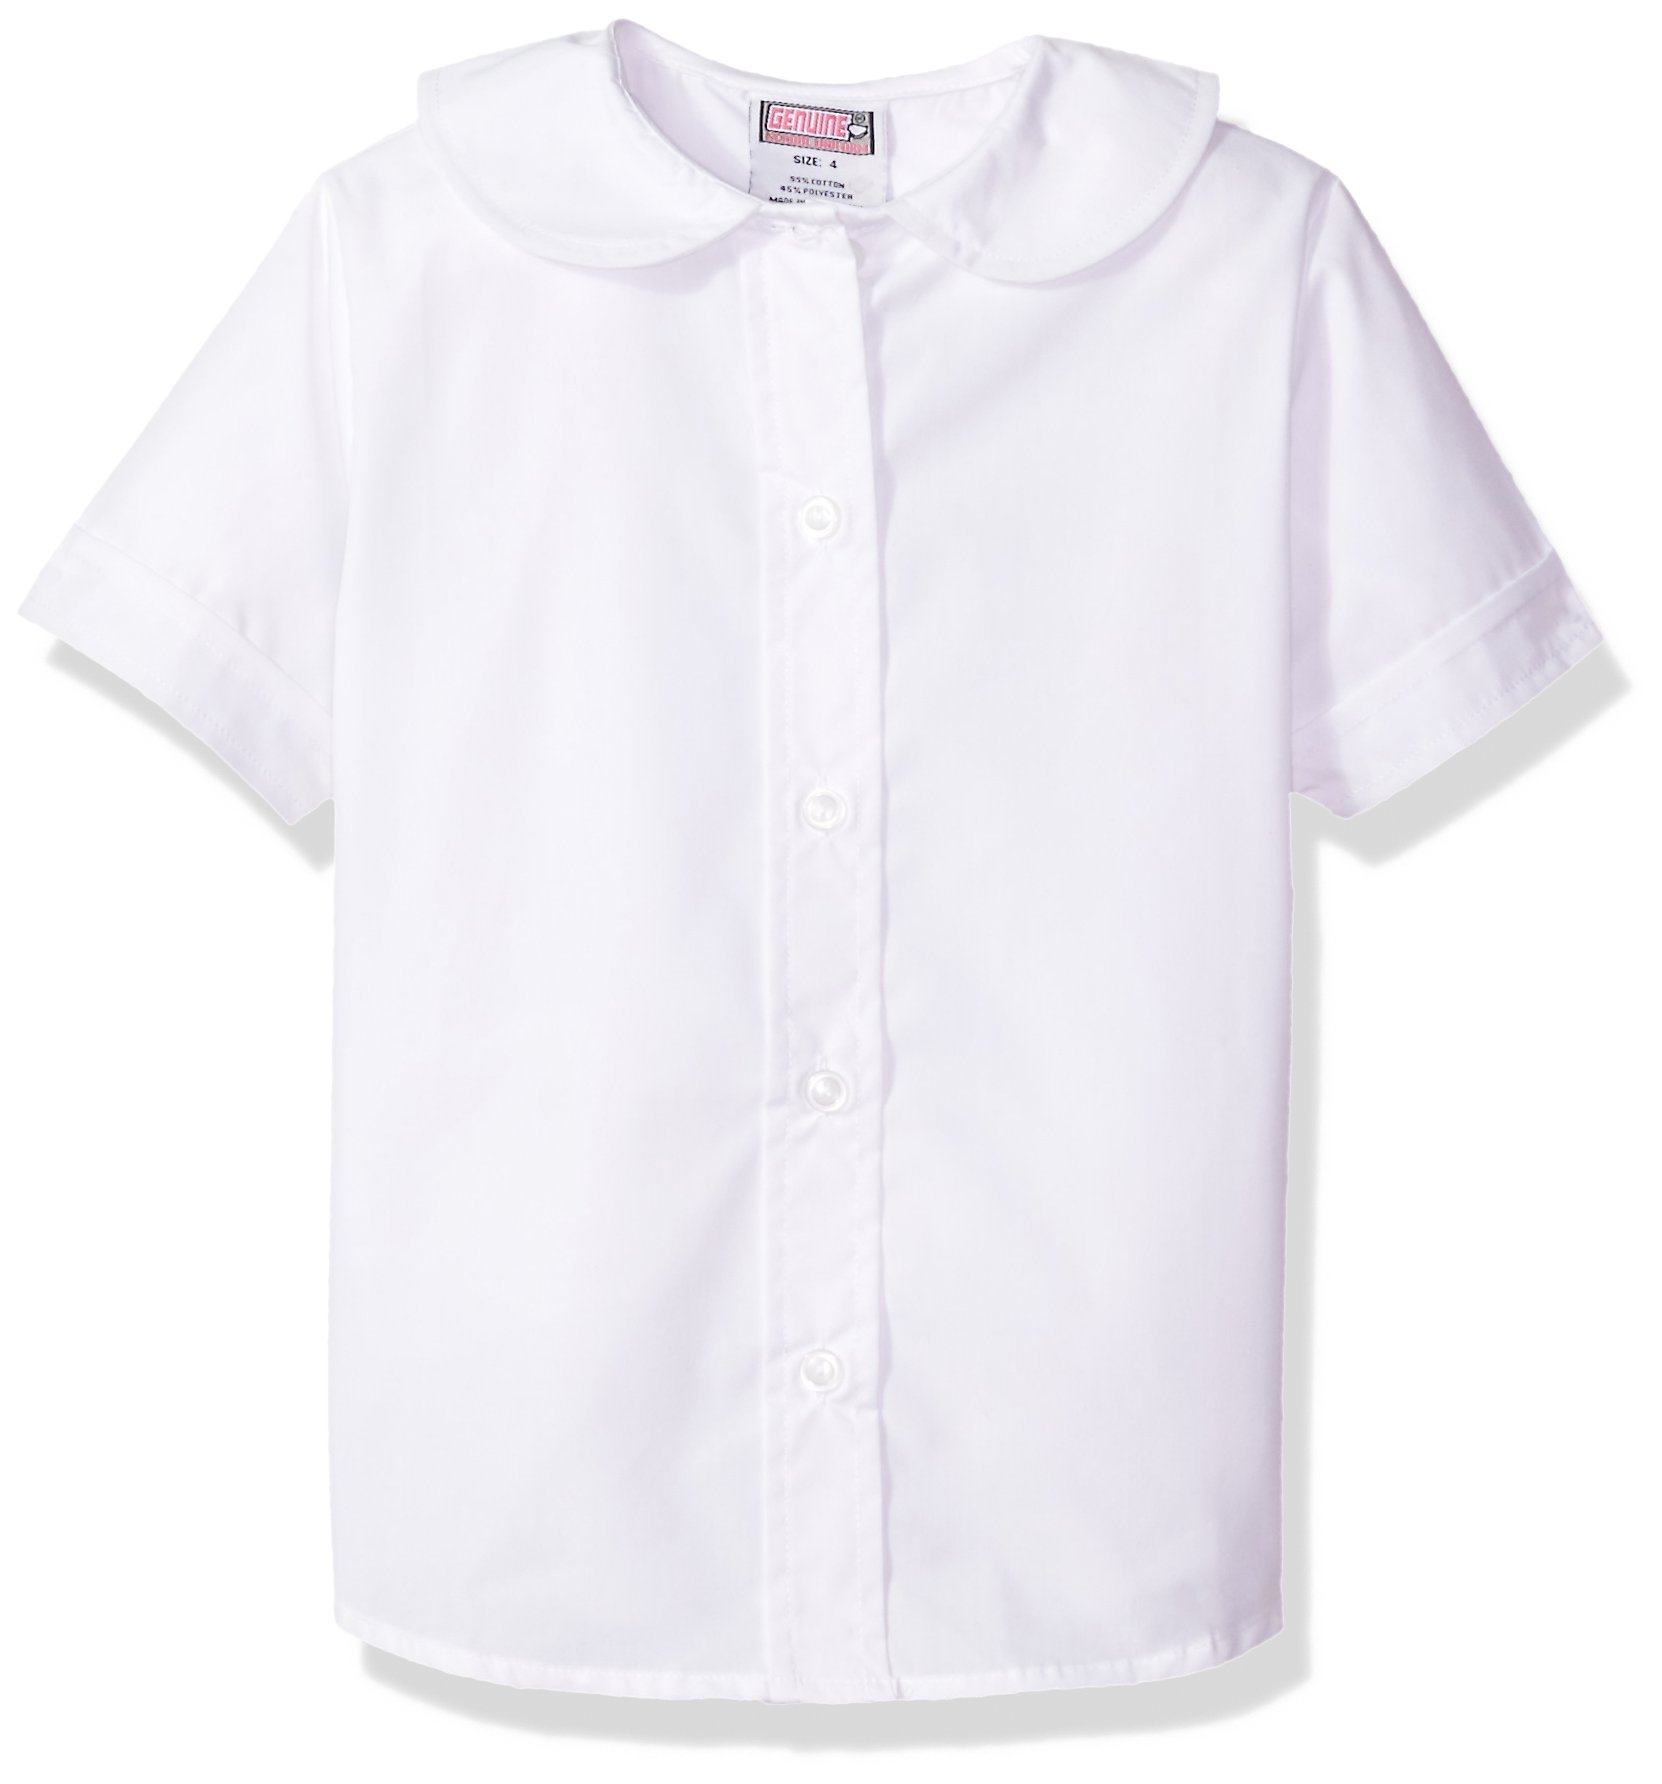 Genuine Big Girls' Blouse (More Styles Available), Short Sleeve White-EJEA, 14